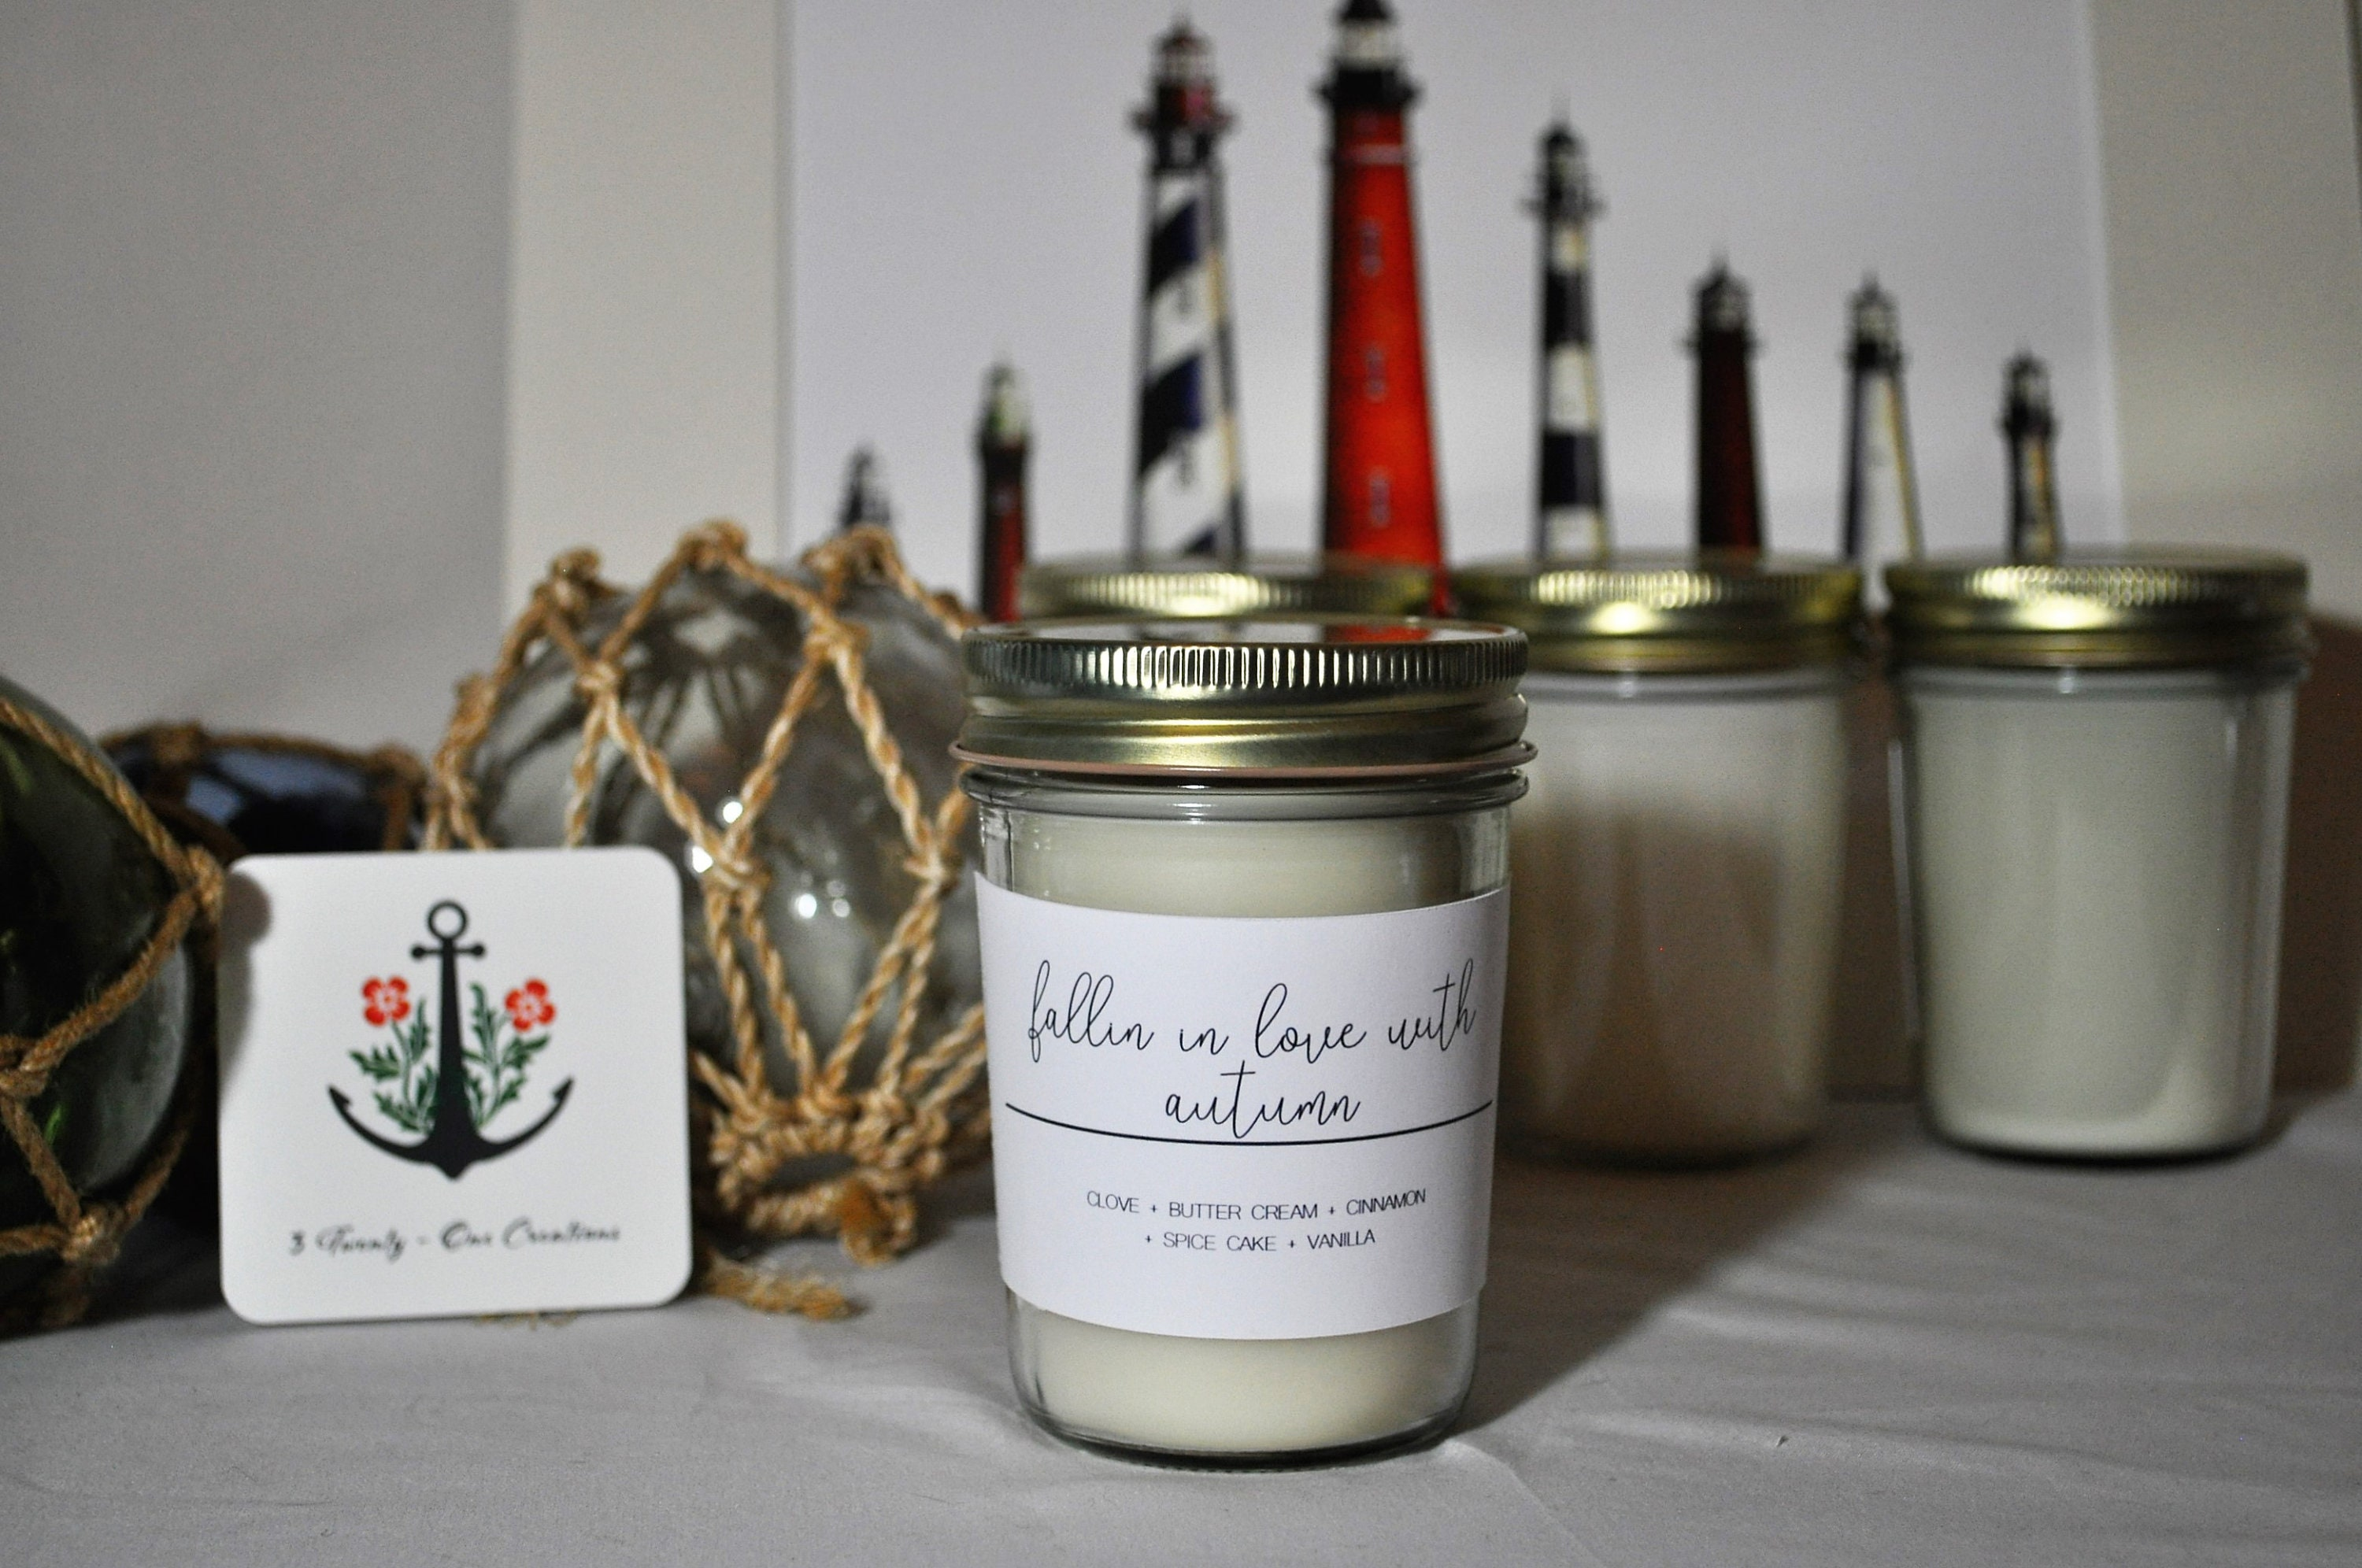 Falling In Love With Autumn Hand Poured All Natural Soy Wax Candle Scented Candles Cinnamon Vanilla